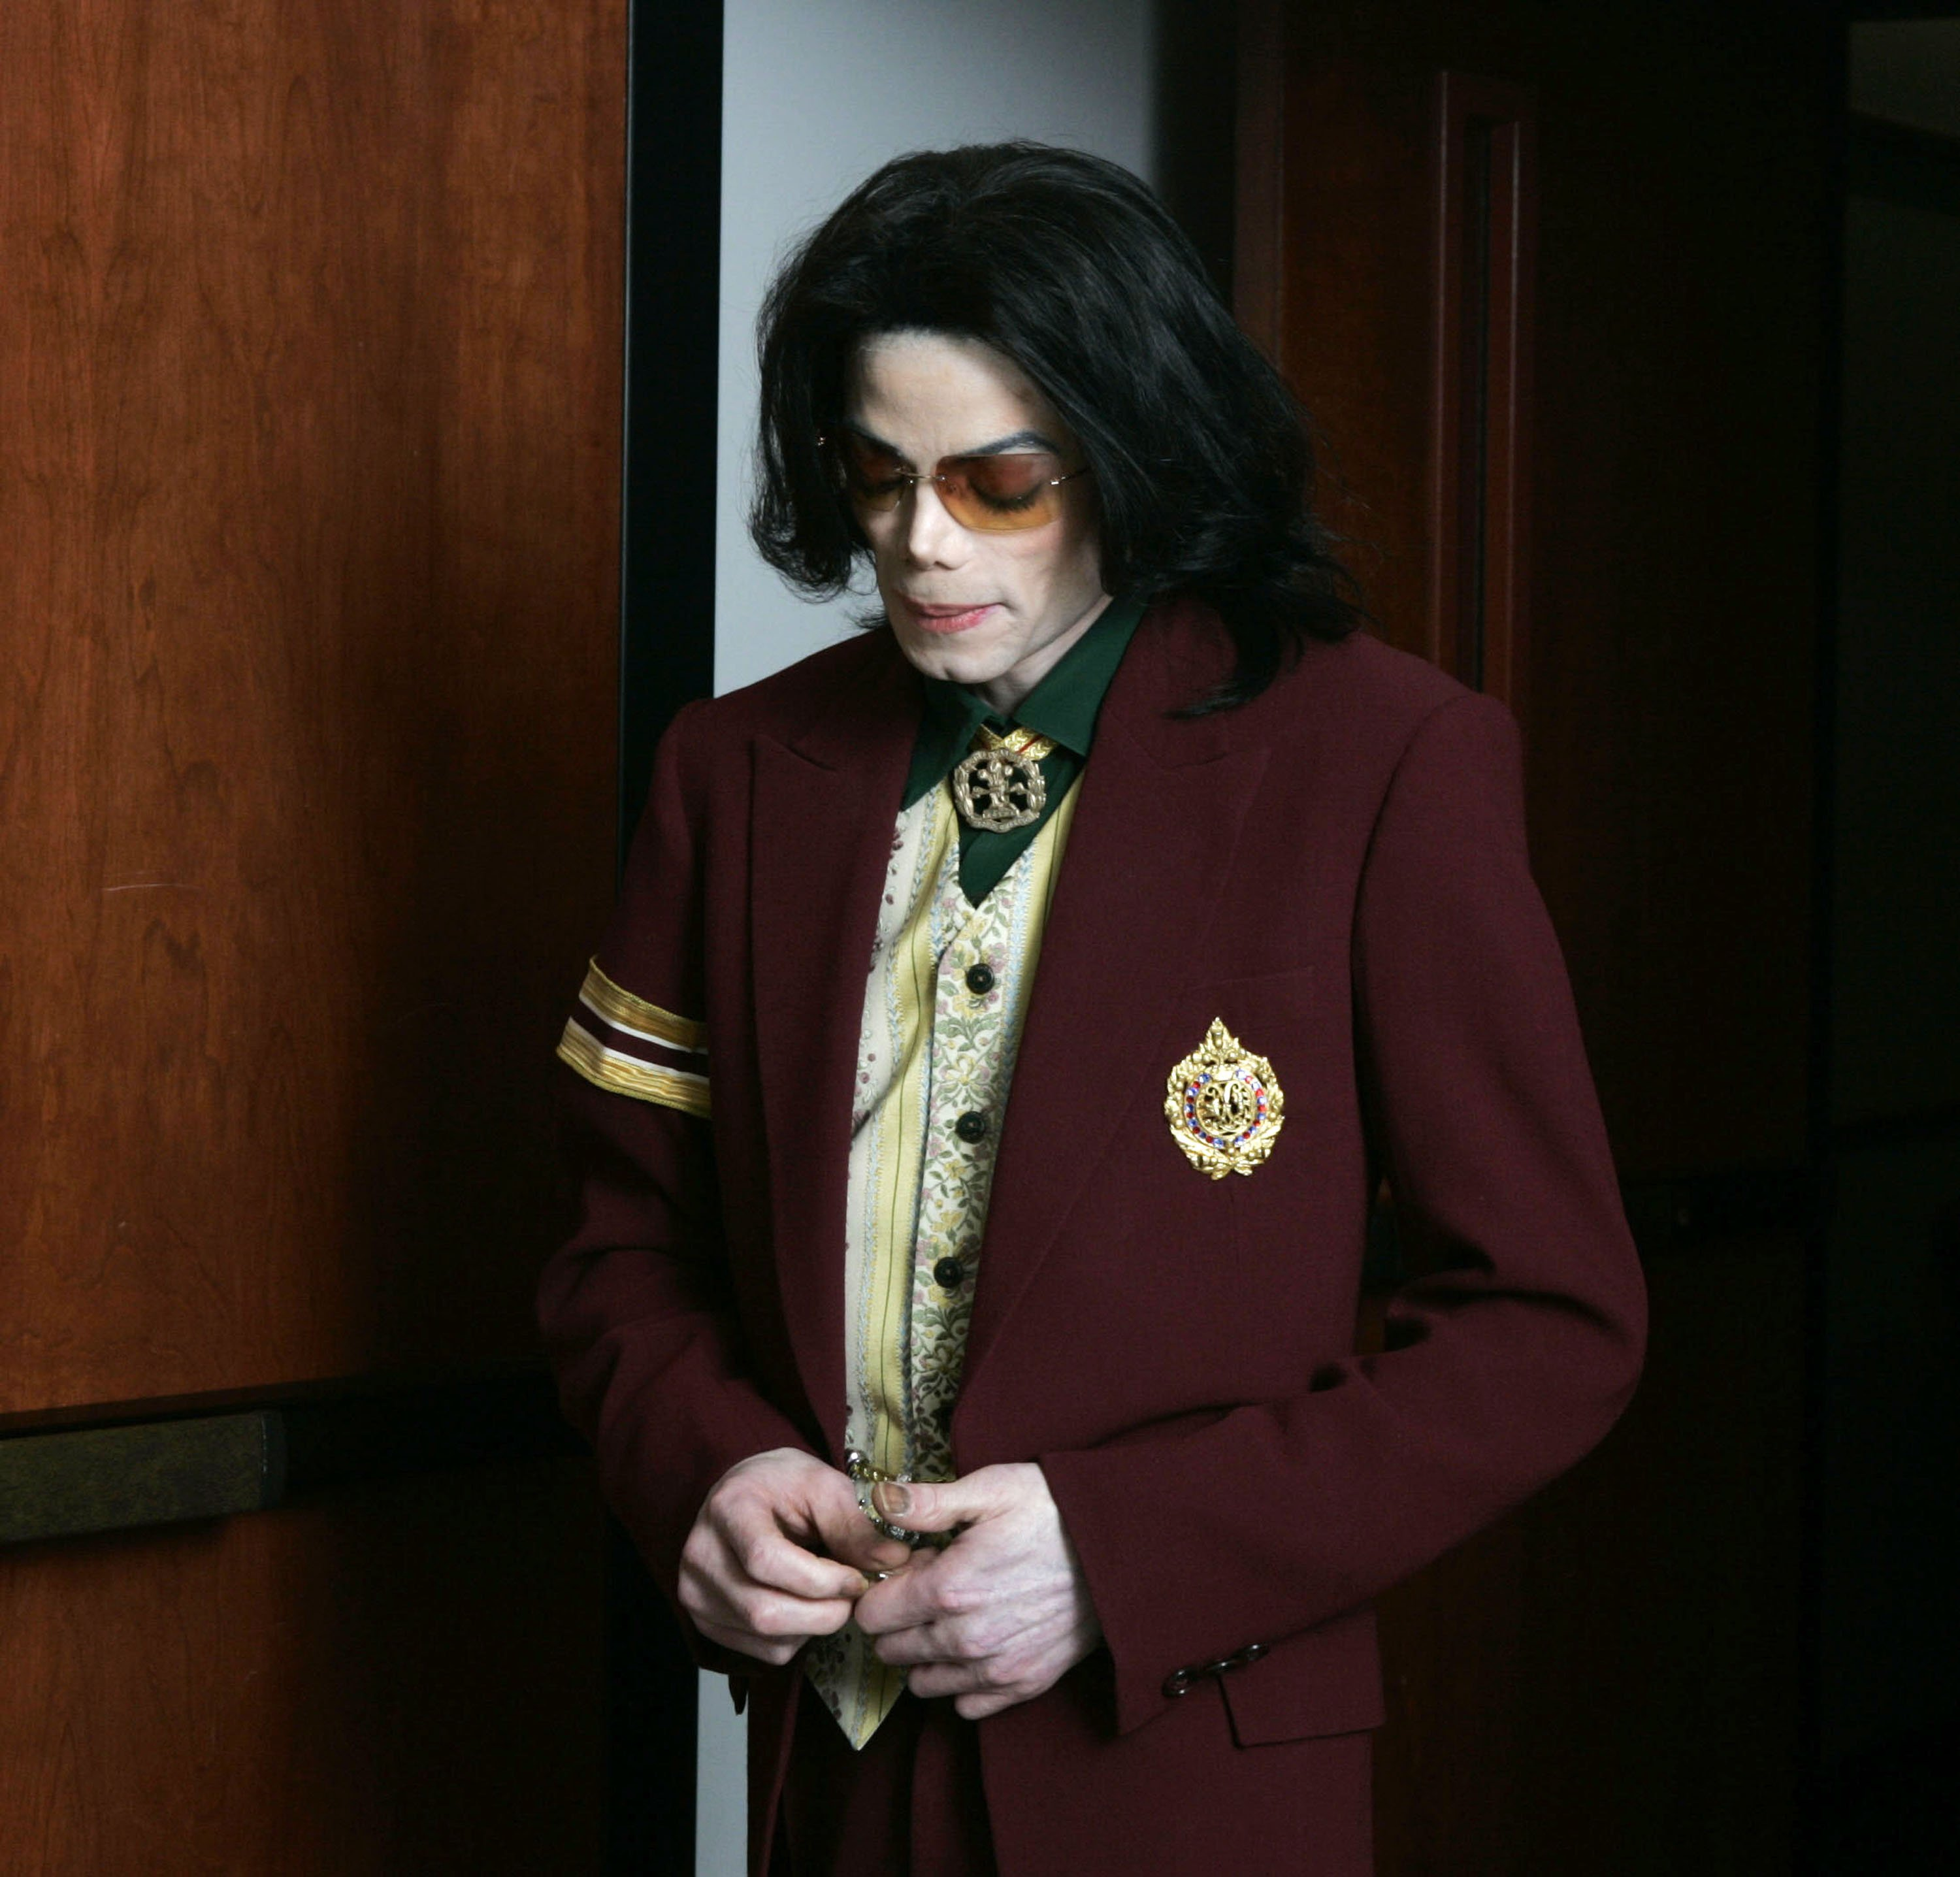 Michael Jackson walking out of the courtroom during a 2005 trial for a 10-count indictment for allegedly molesting a boy. | Photo: Getty Images